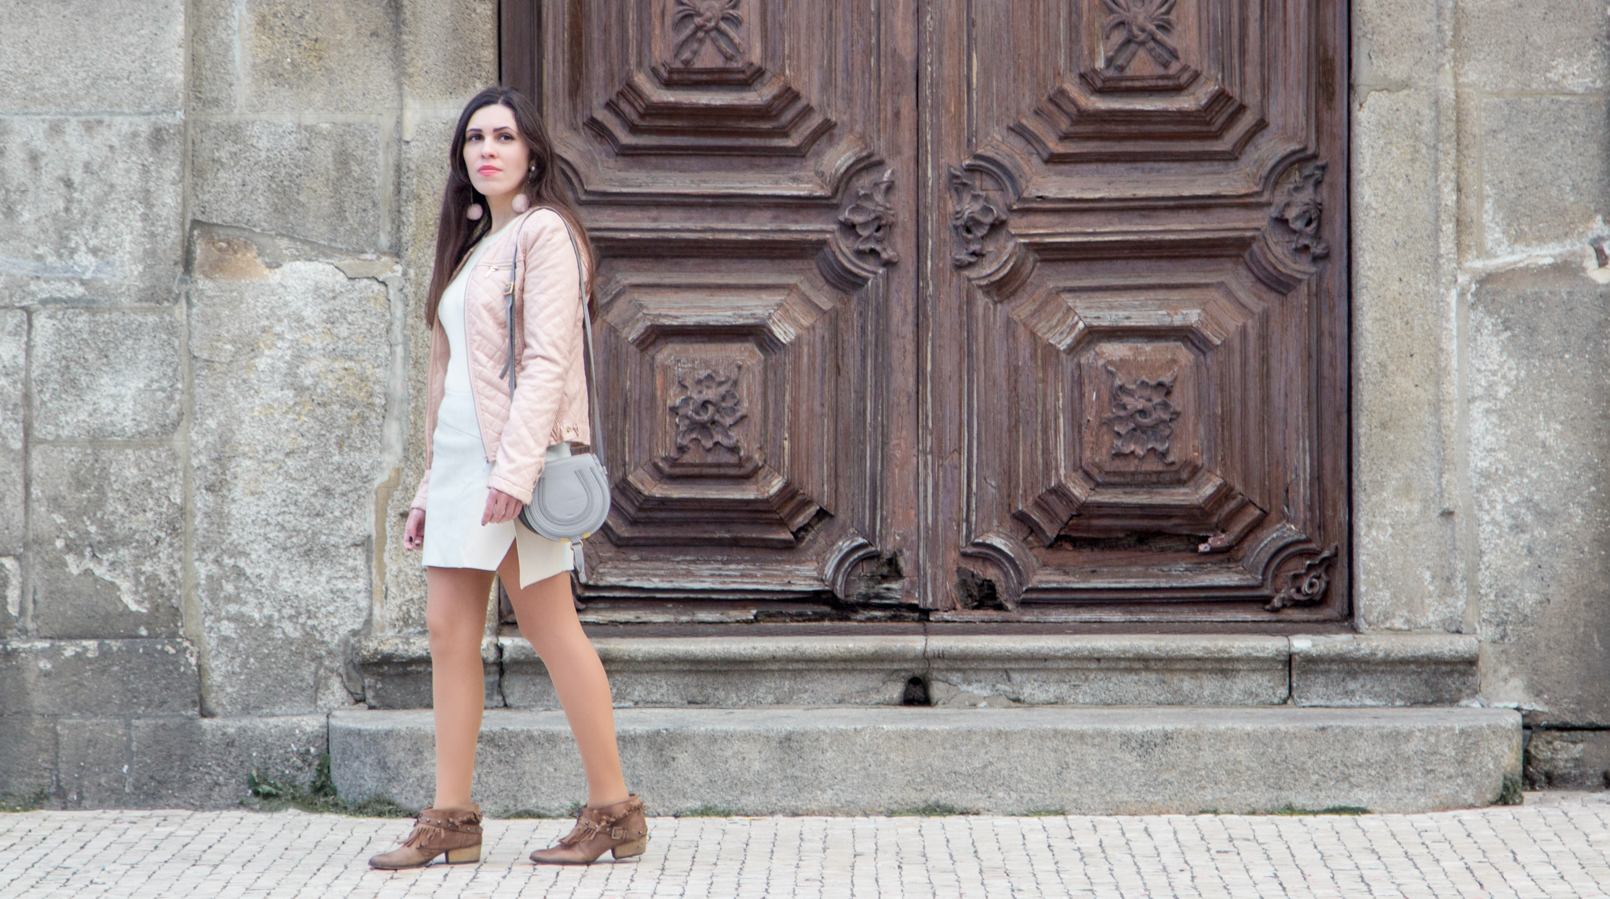 Le Fashionaire Spring Touch blogger catarine martins fake leather pale pink zara jacket ankle camel boots fringes bershka chloe mini marcie gray leather bag 7335F EN